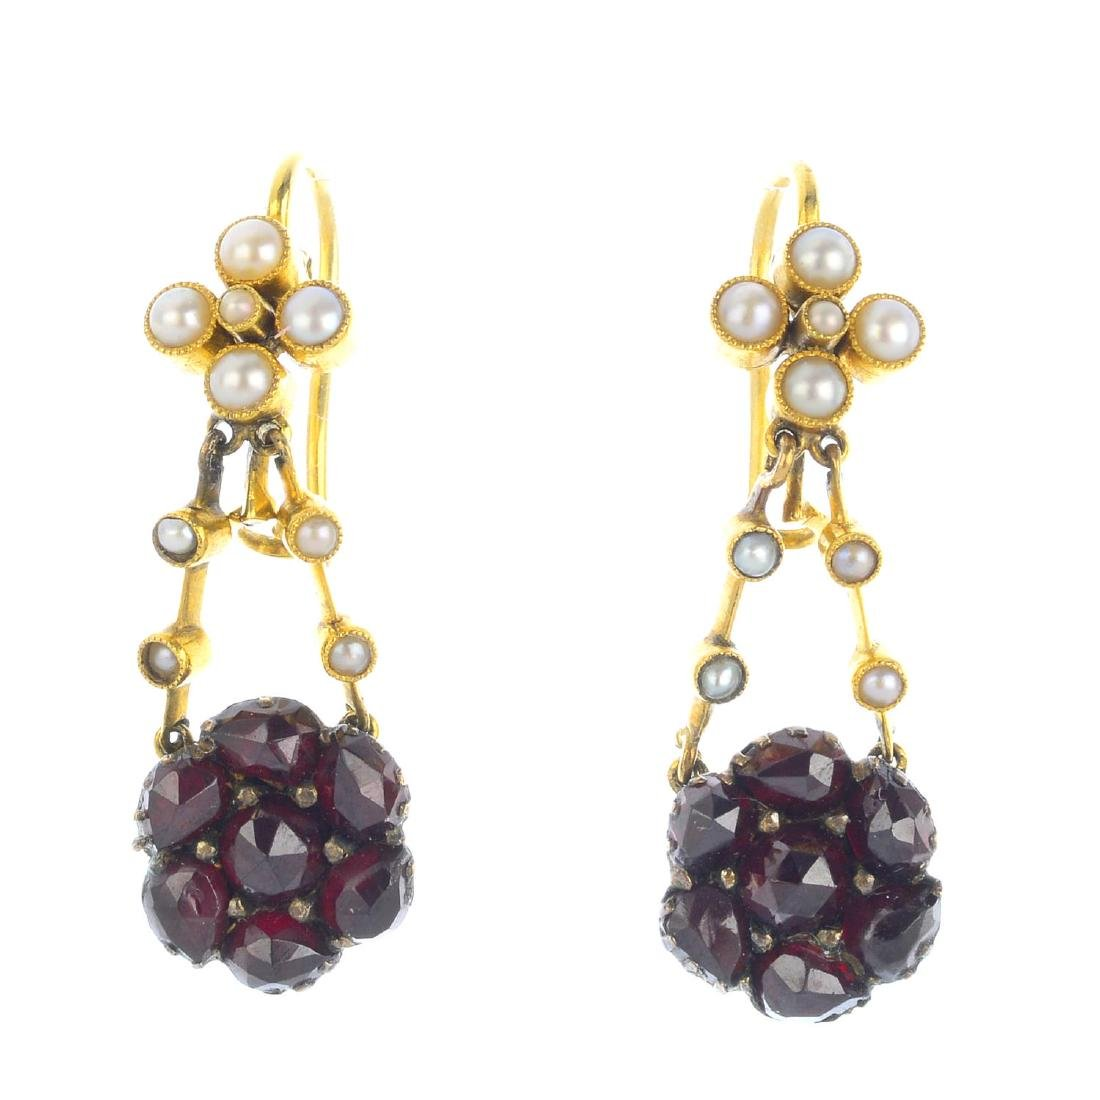 A pair of foil-backed garnet and seed pearl earrings.